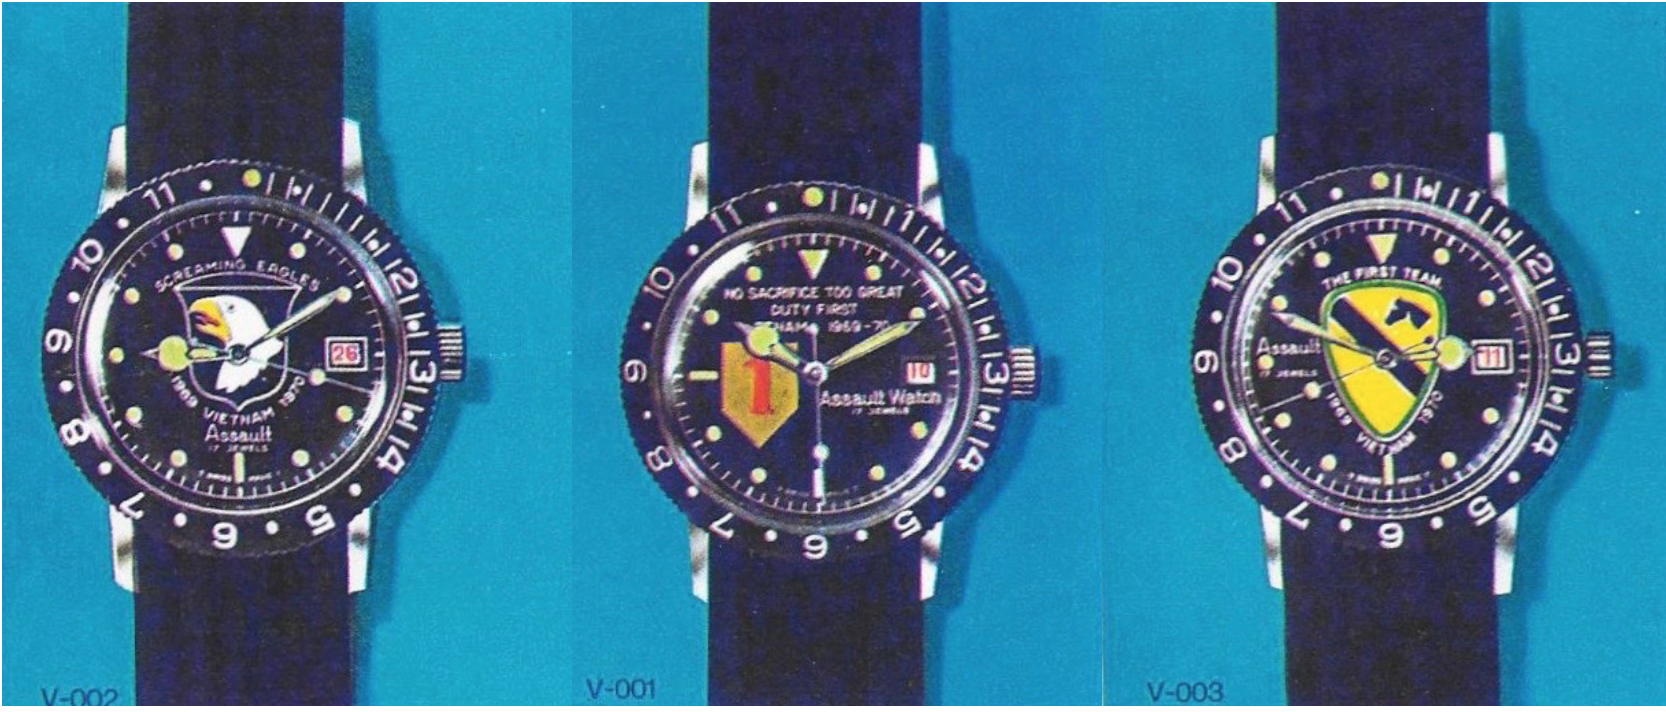 OW created watches to honour specific military units, branches and ranks. The 101st Airborne Division, aka 'Screaming Eagles' (left). The 1st Infantry Division, officially nicknamed 'The Big Red One', with their motto ' No sacrifice too great — duty first' (middle). The 1st Cavalry Division — 'First Team' — once served as a horseback cavalry division, hence a horse's head insignia (right).